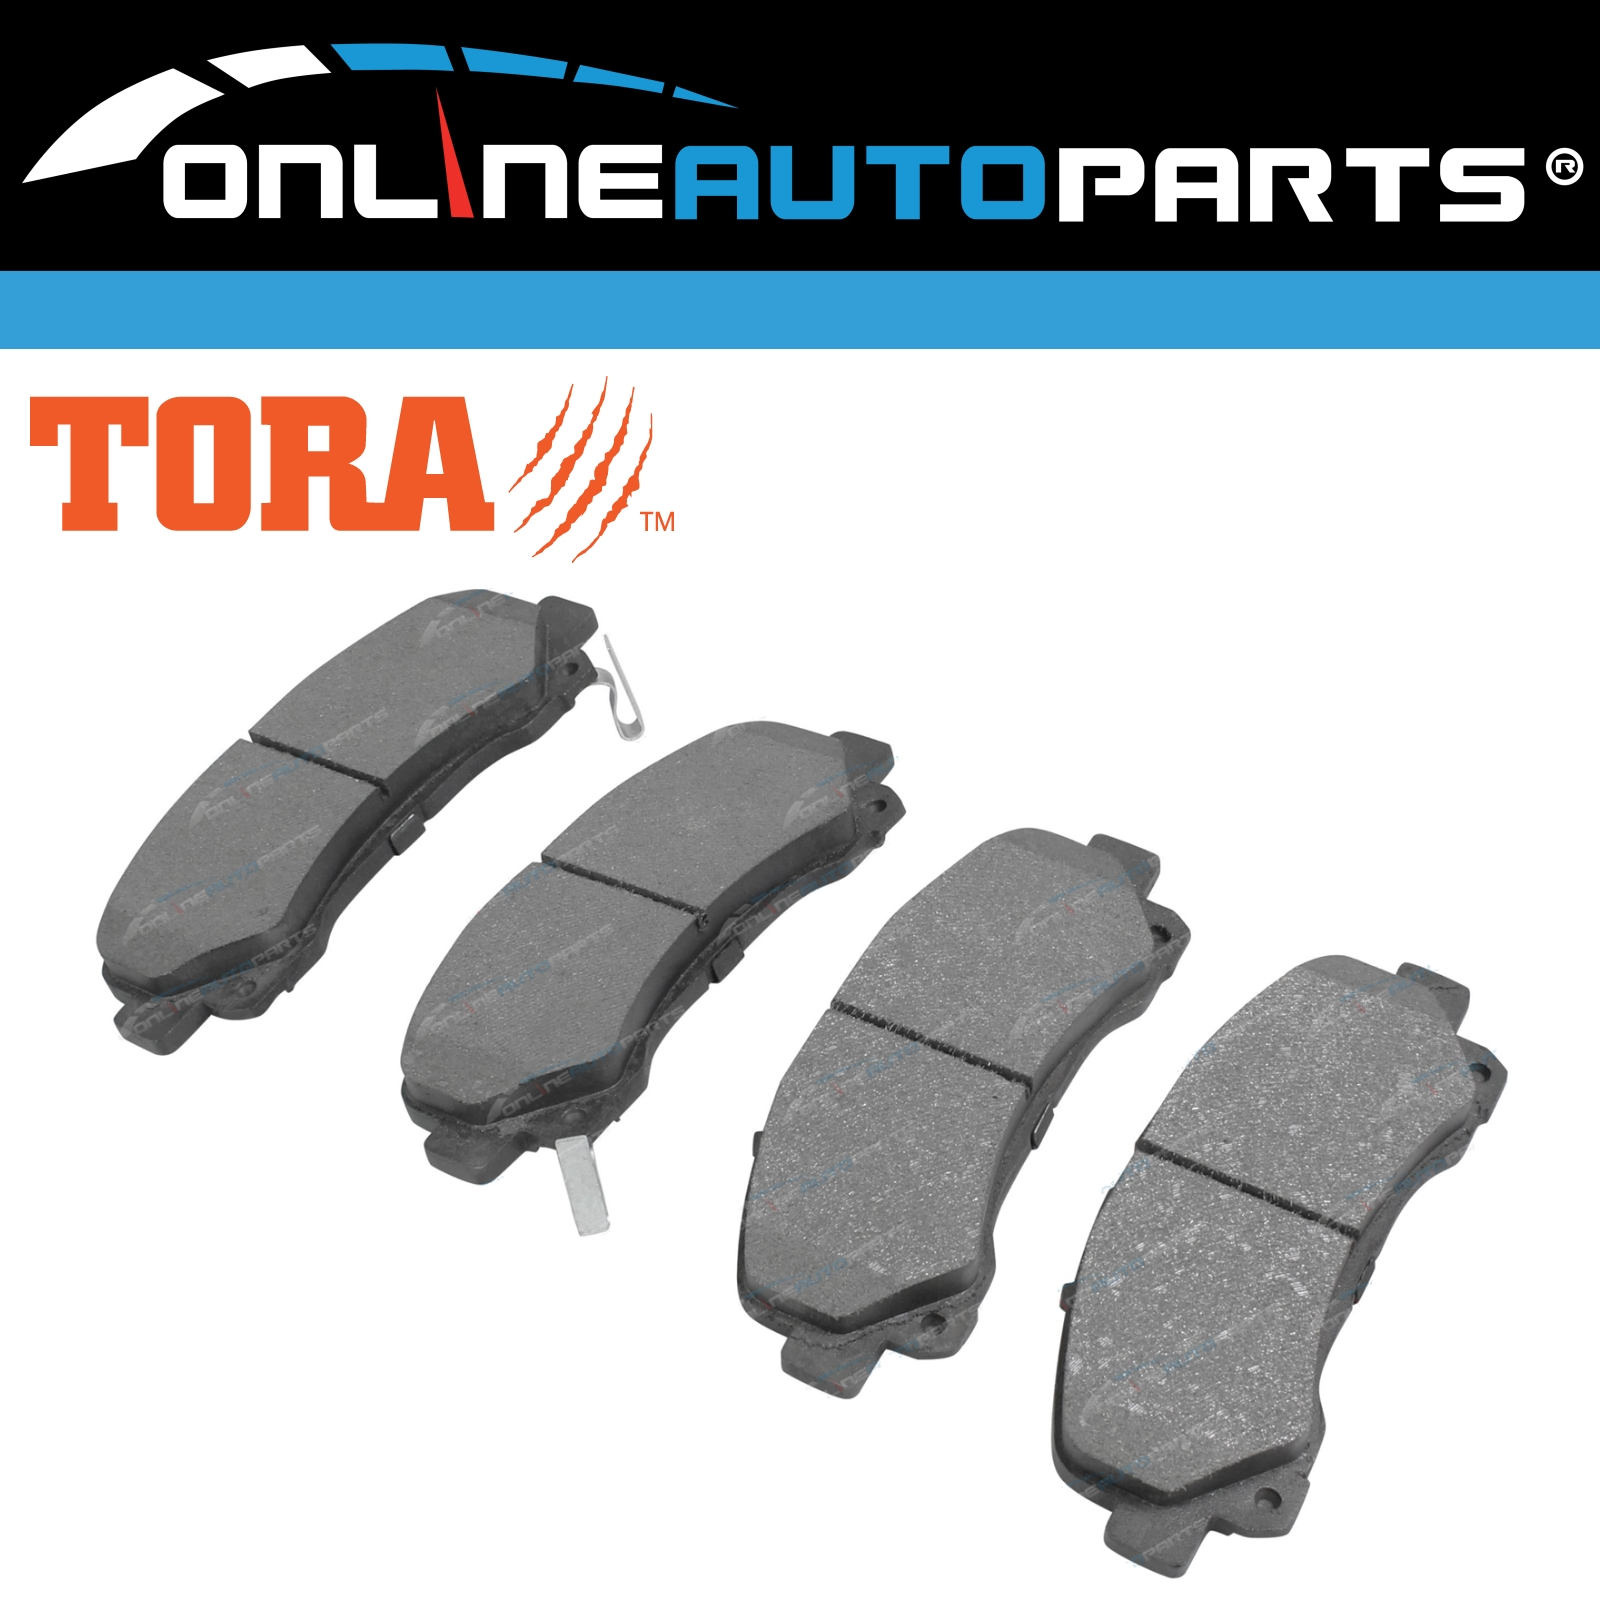 Front Disc Brake Pads Set suits Toyota Prius NHW20R 2003 to 2009 Hybrid New